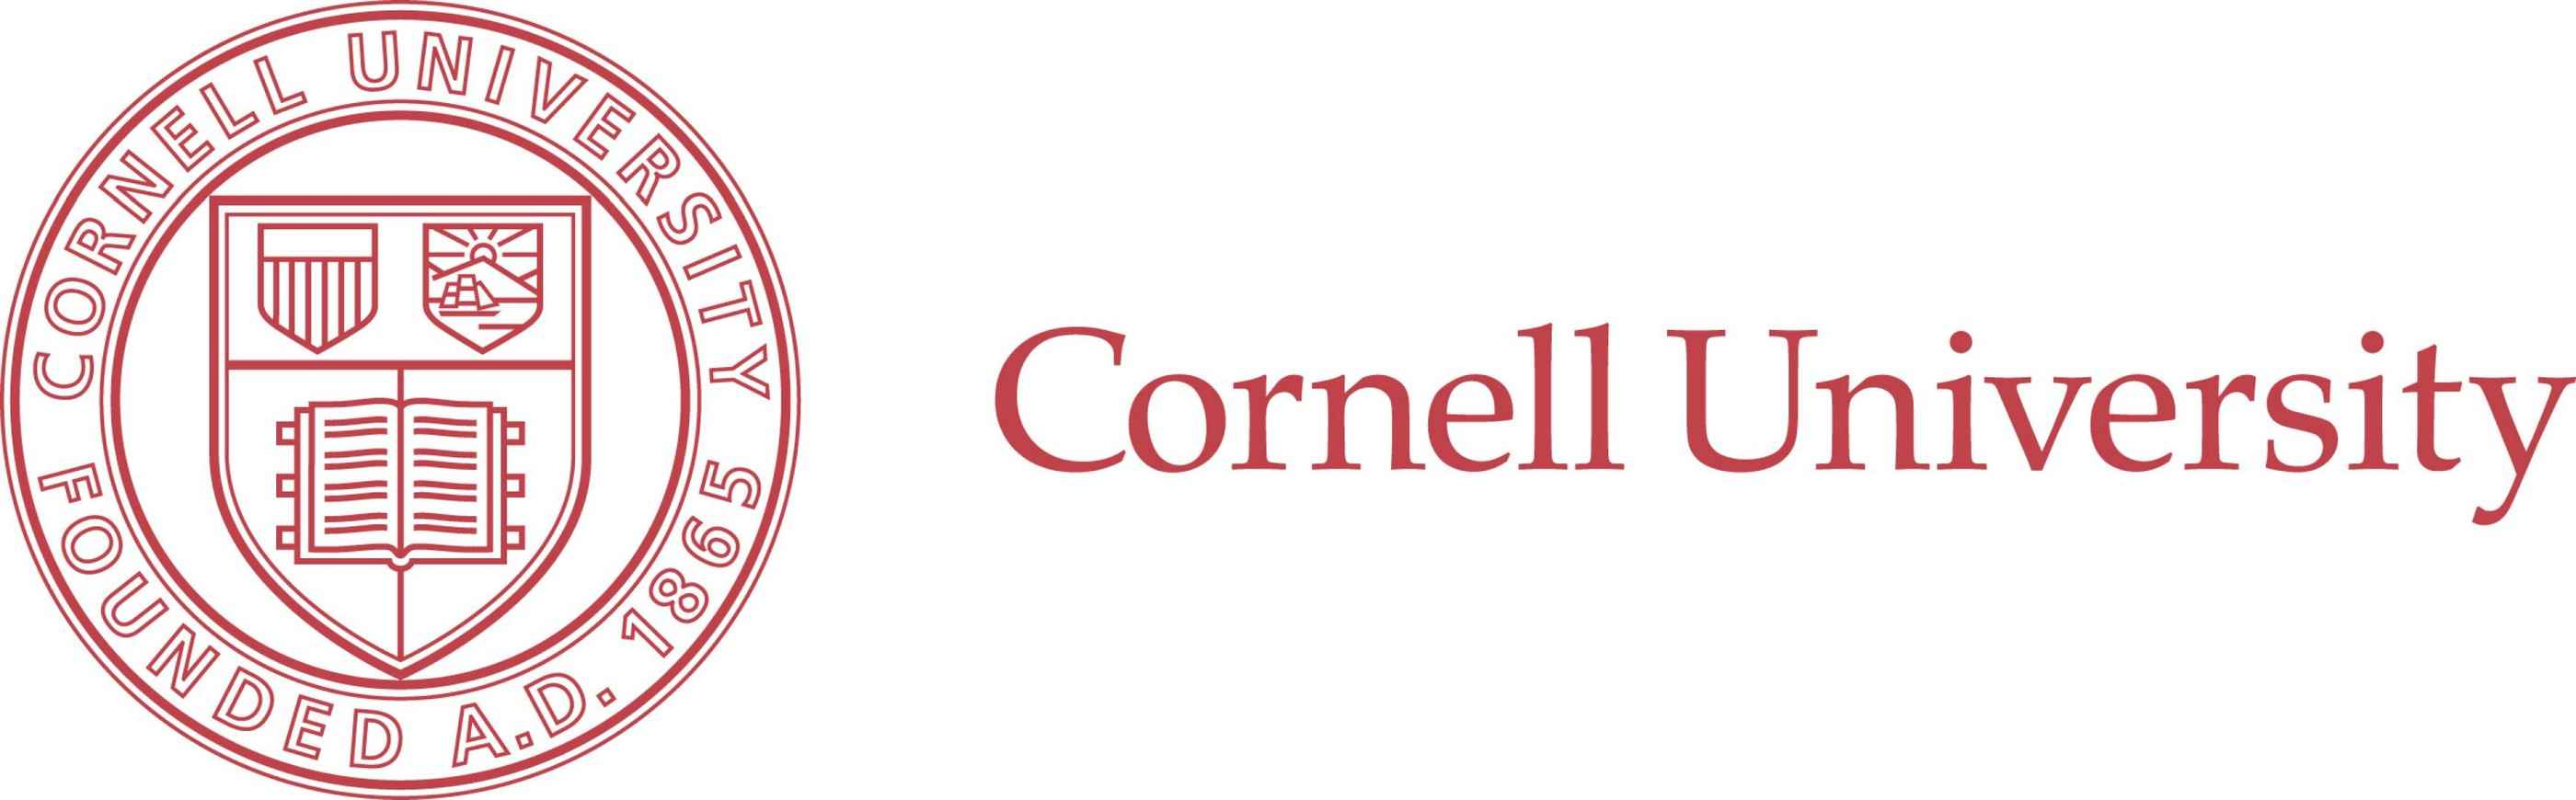 Cornell University Arm&Emblem [EPS-PDF] Vector EPS Free Download, Logo, Icons, Brand Emblems